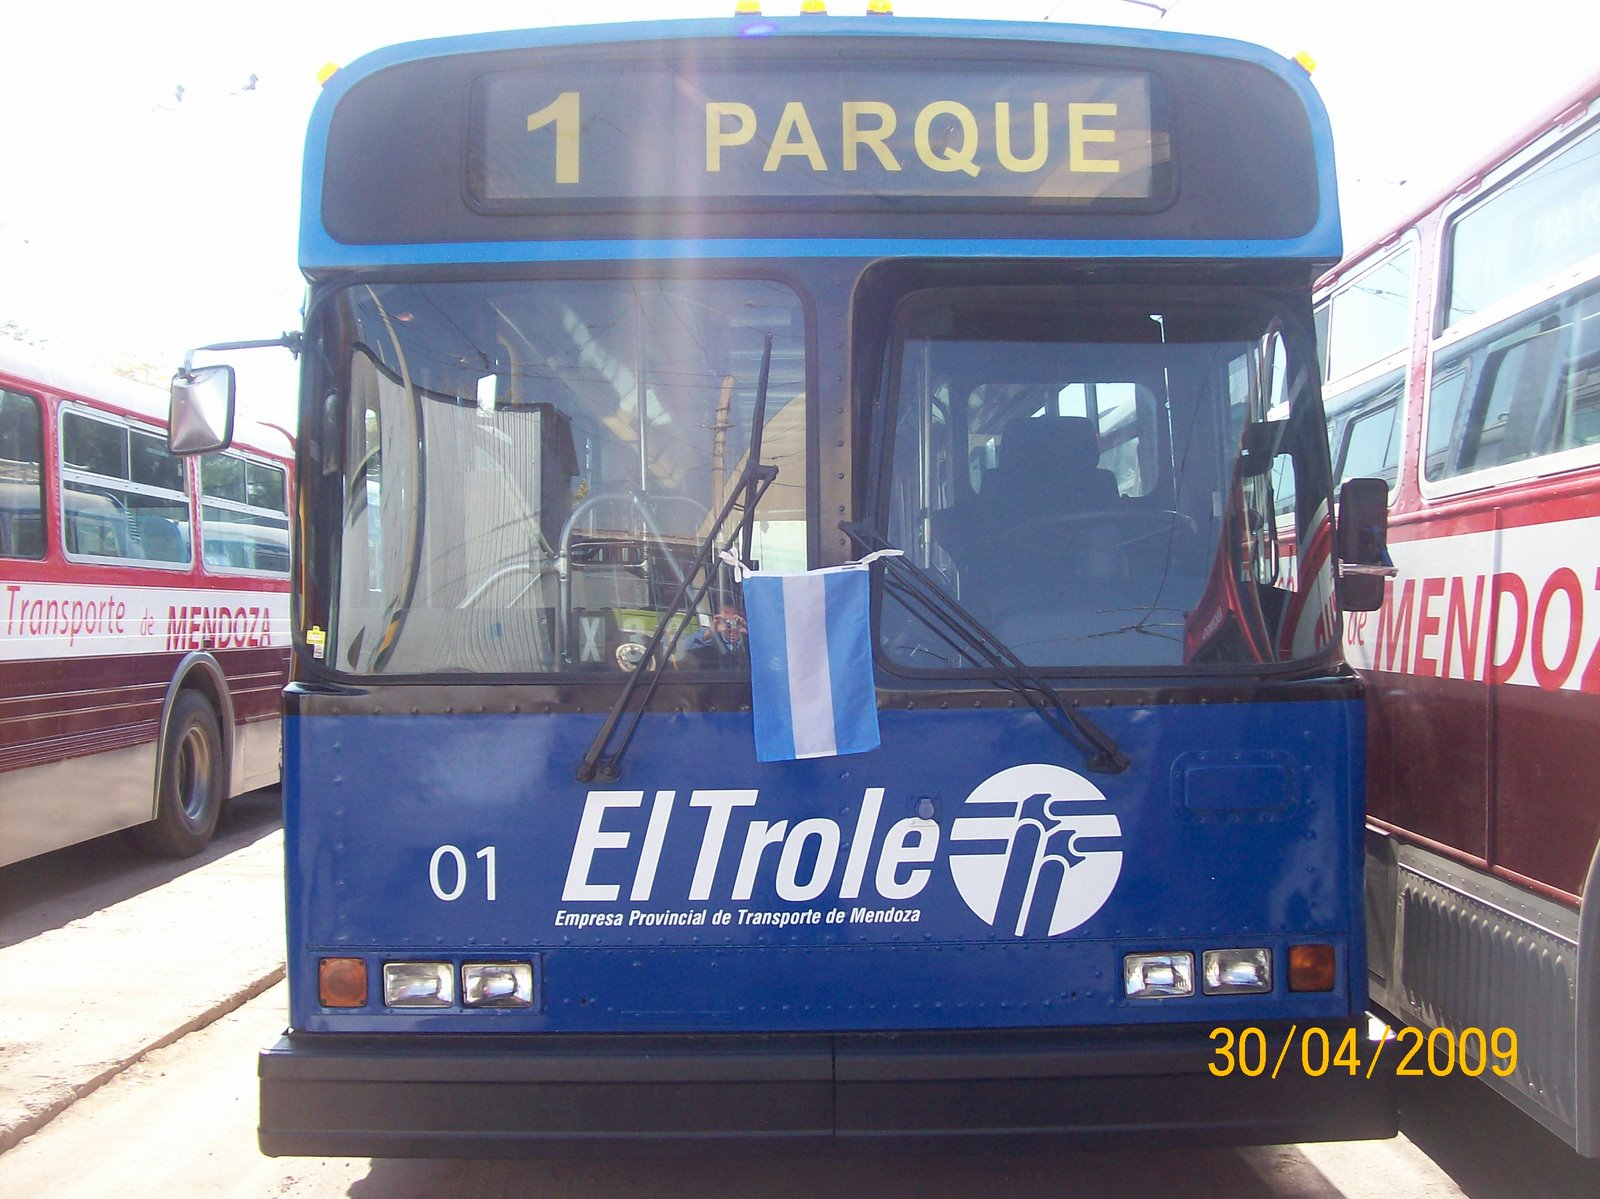 Trolley 01, with the Argentina flag on its front! Photo by Jorge Luis Guevara.